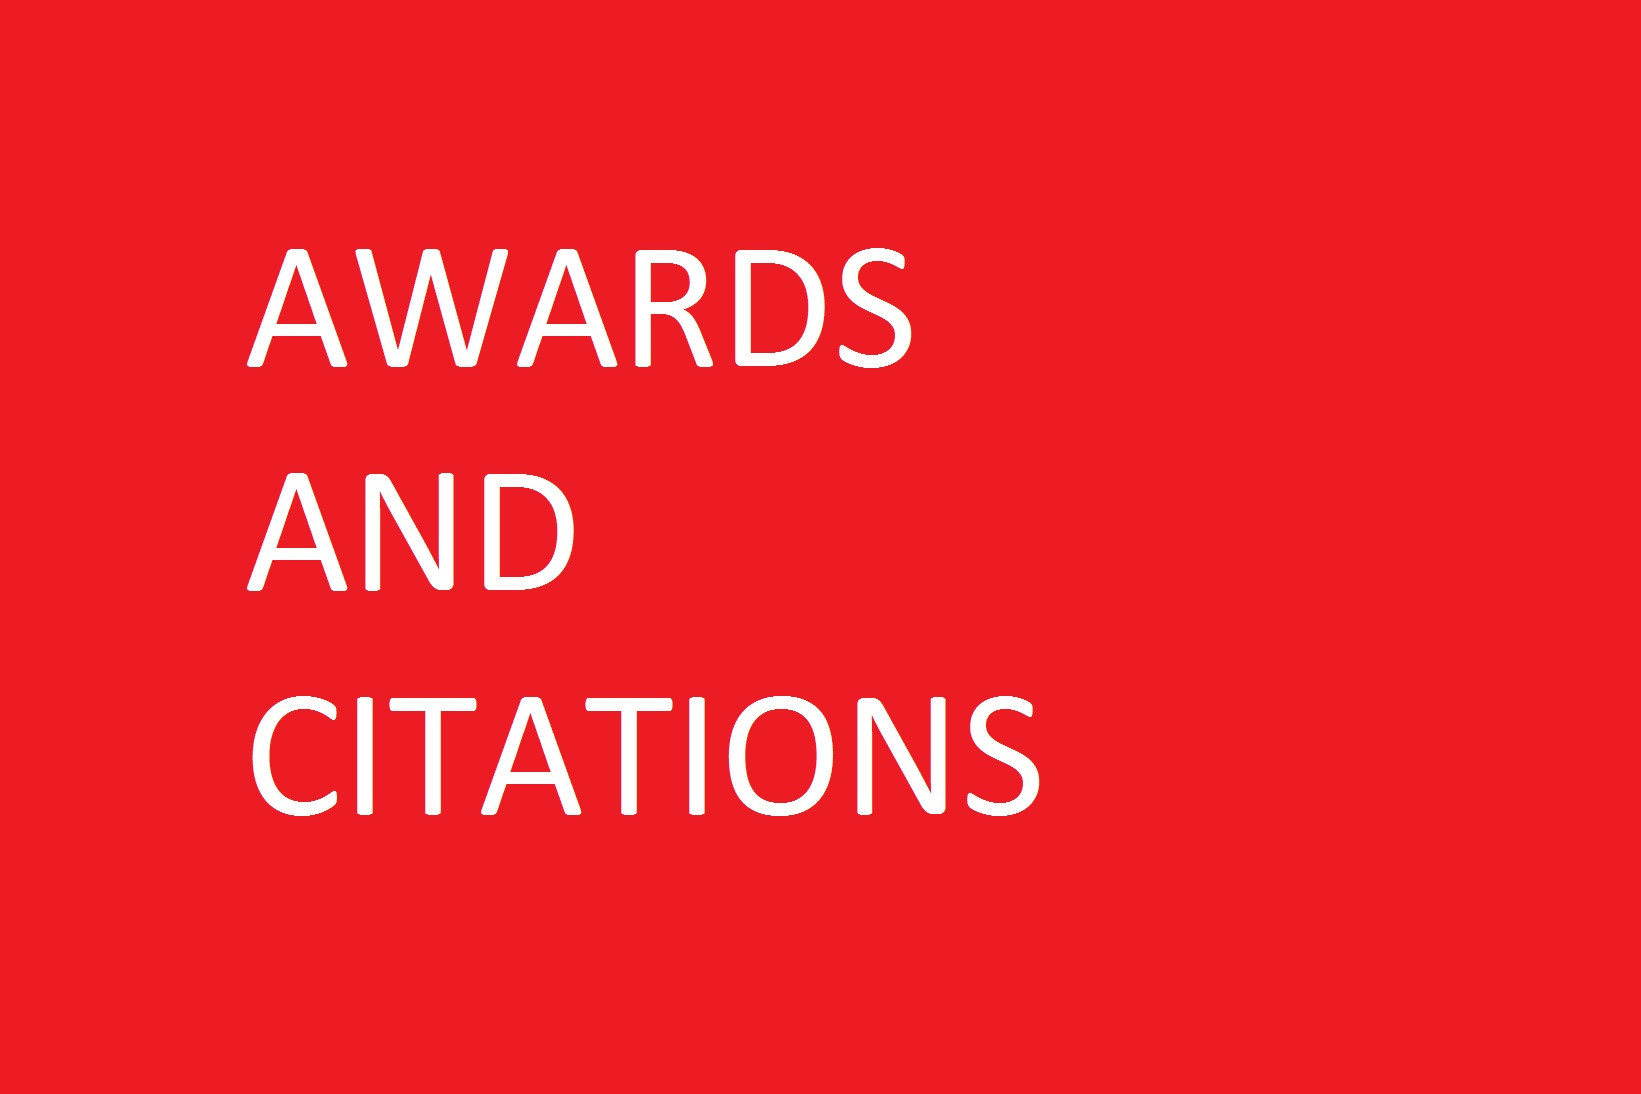 awards-and-citations